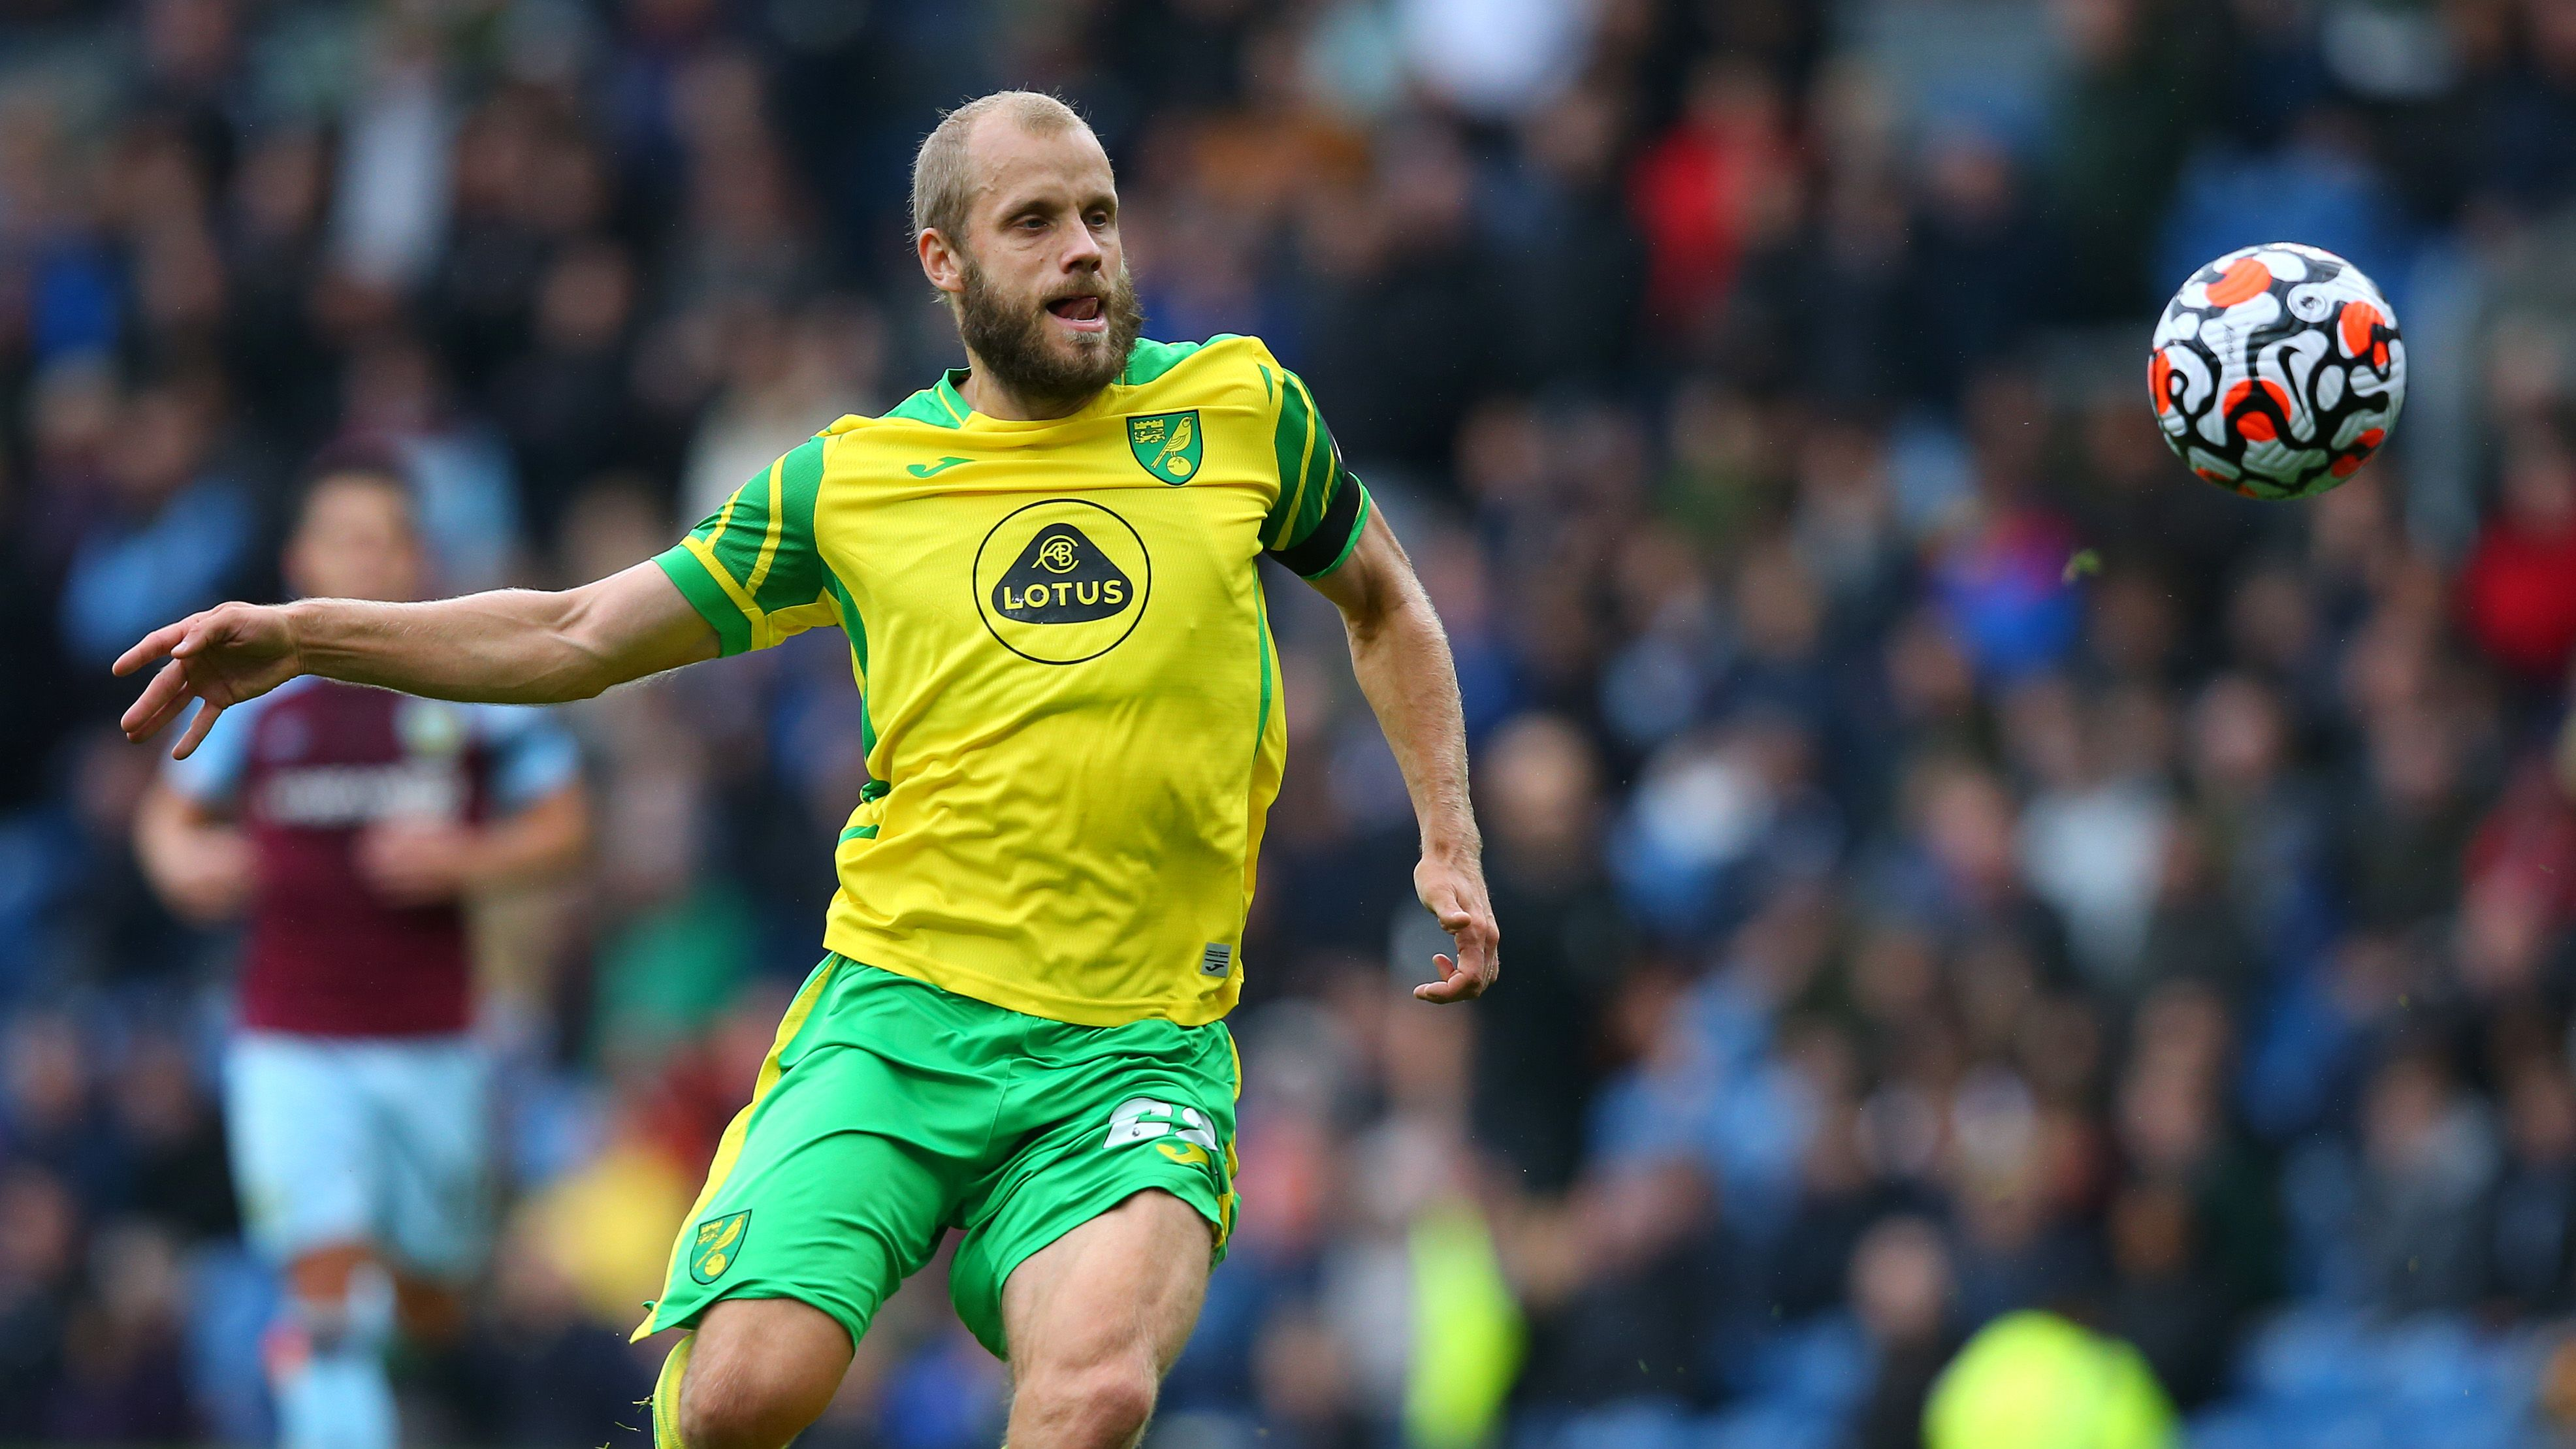 teemu-pukki-the-last-game-we-had-huge-support-i-hope-it-will-be-the-same-on-saturday